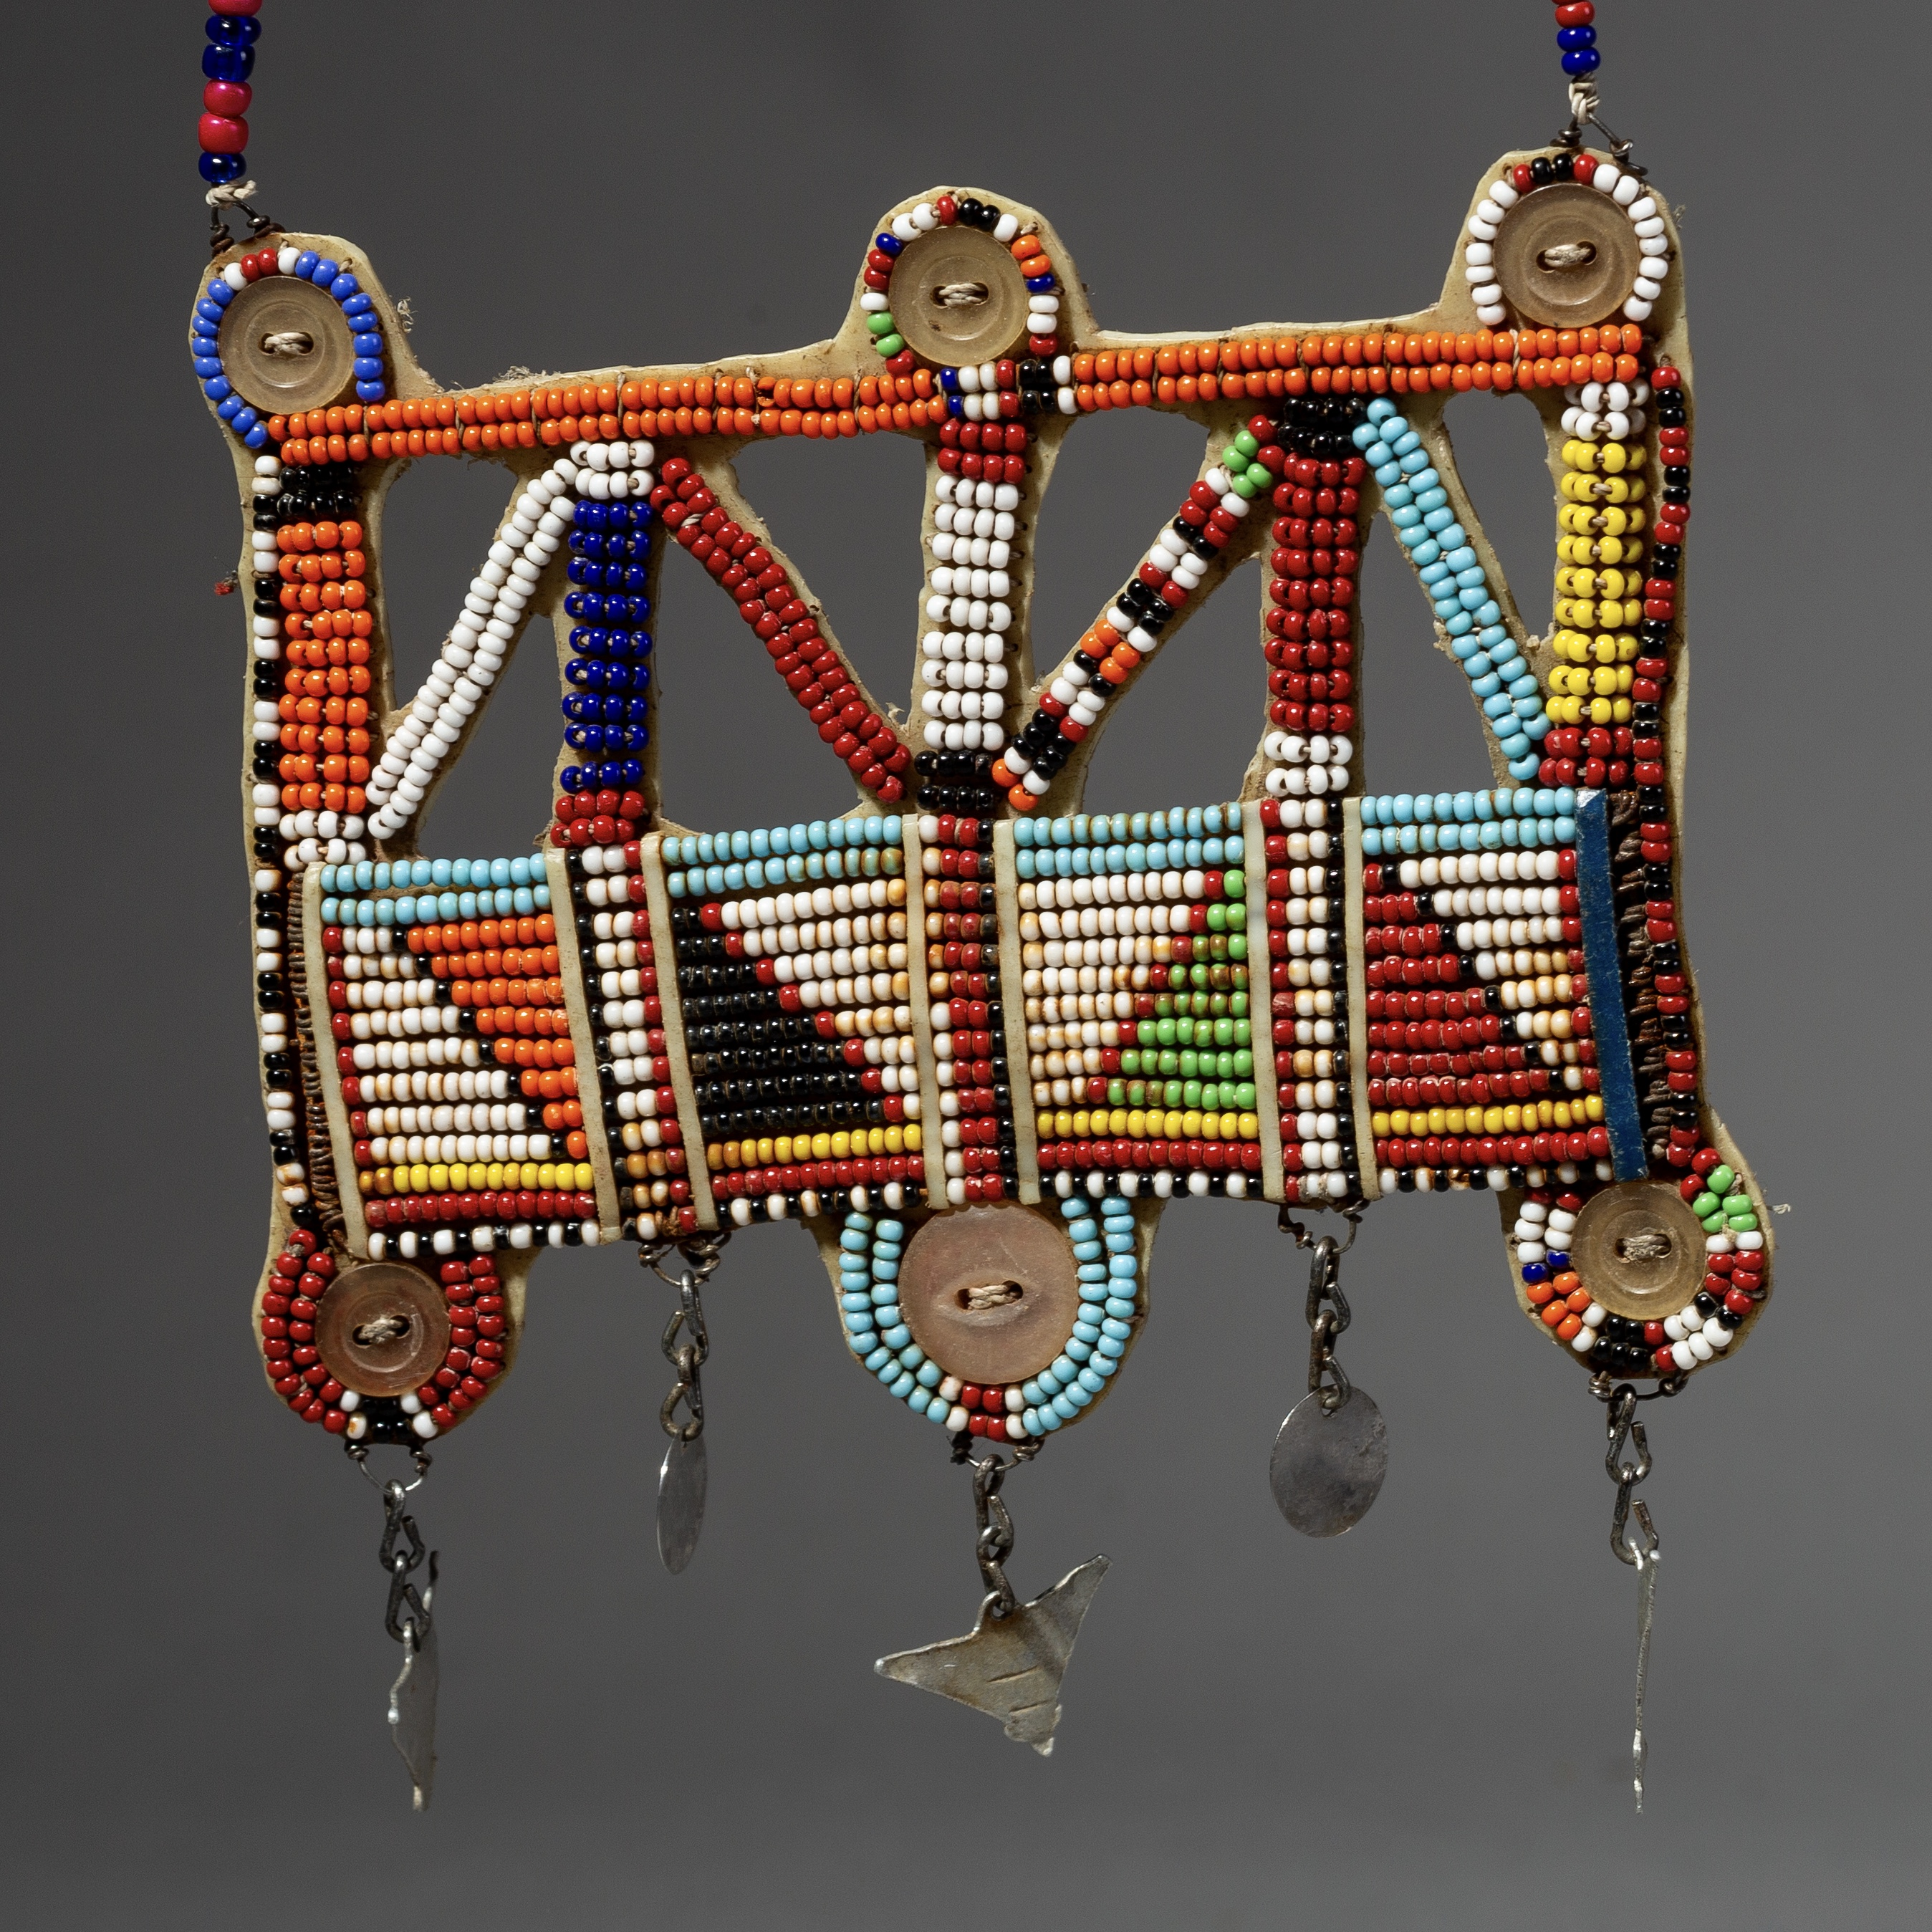 A GRAPHIC BEADED NECKLACE FROM MAASAI TRIBE OF KENYA ( No 2073 )